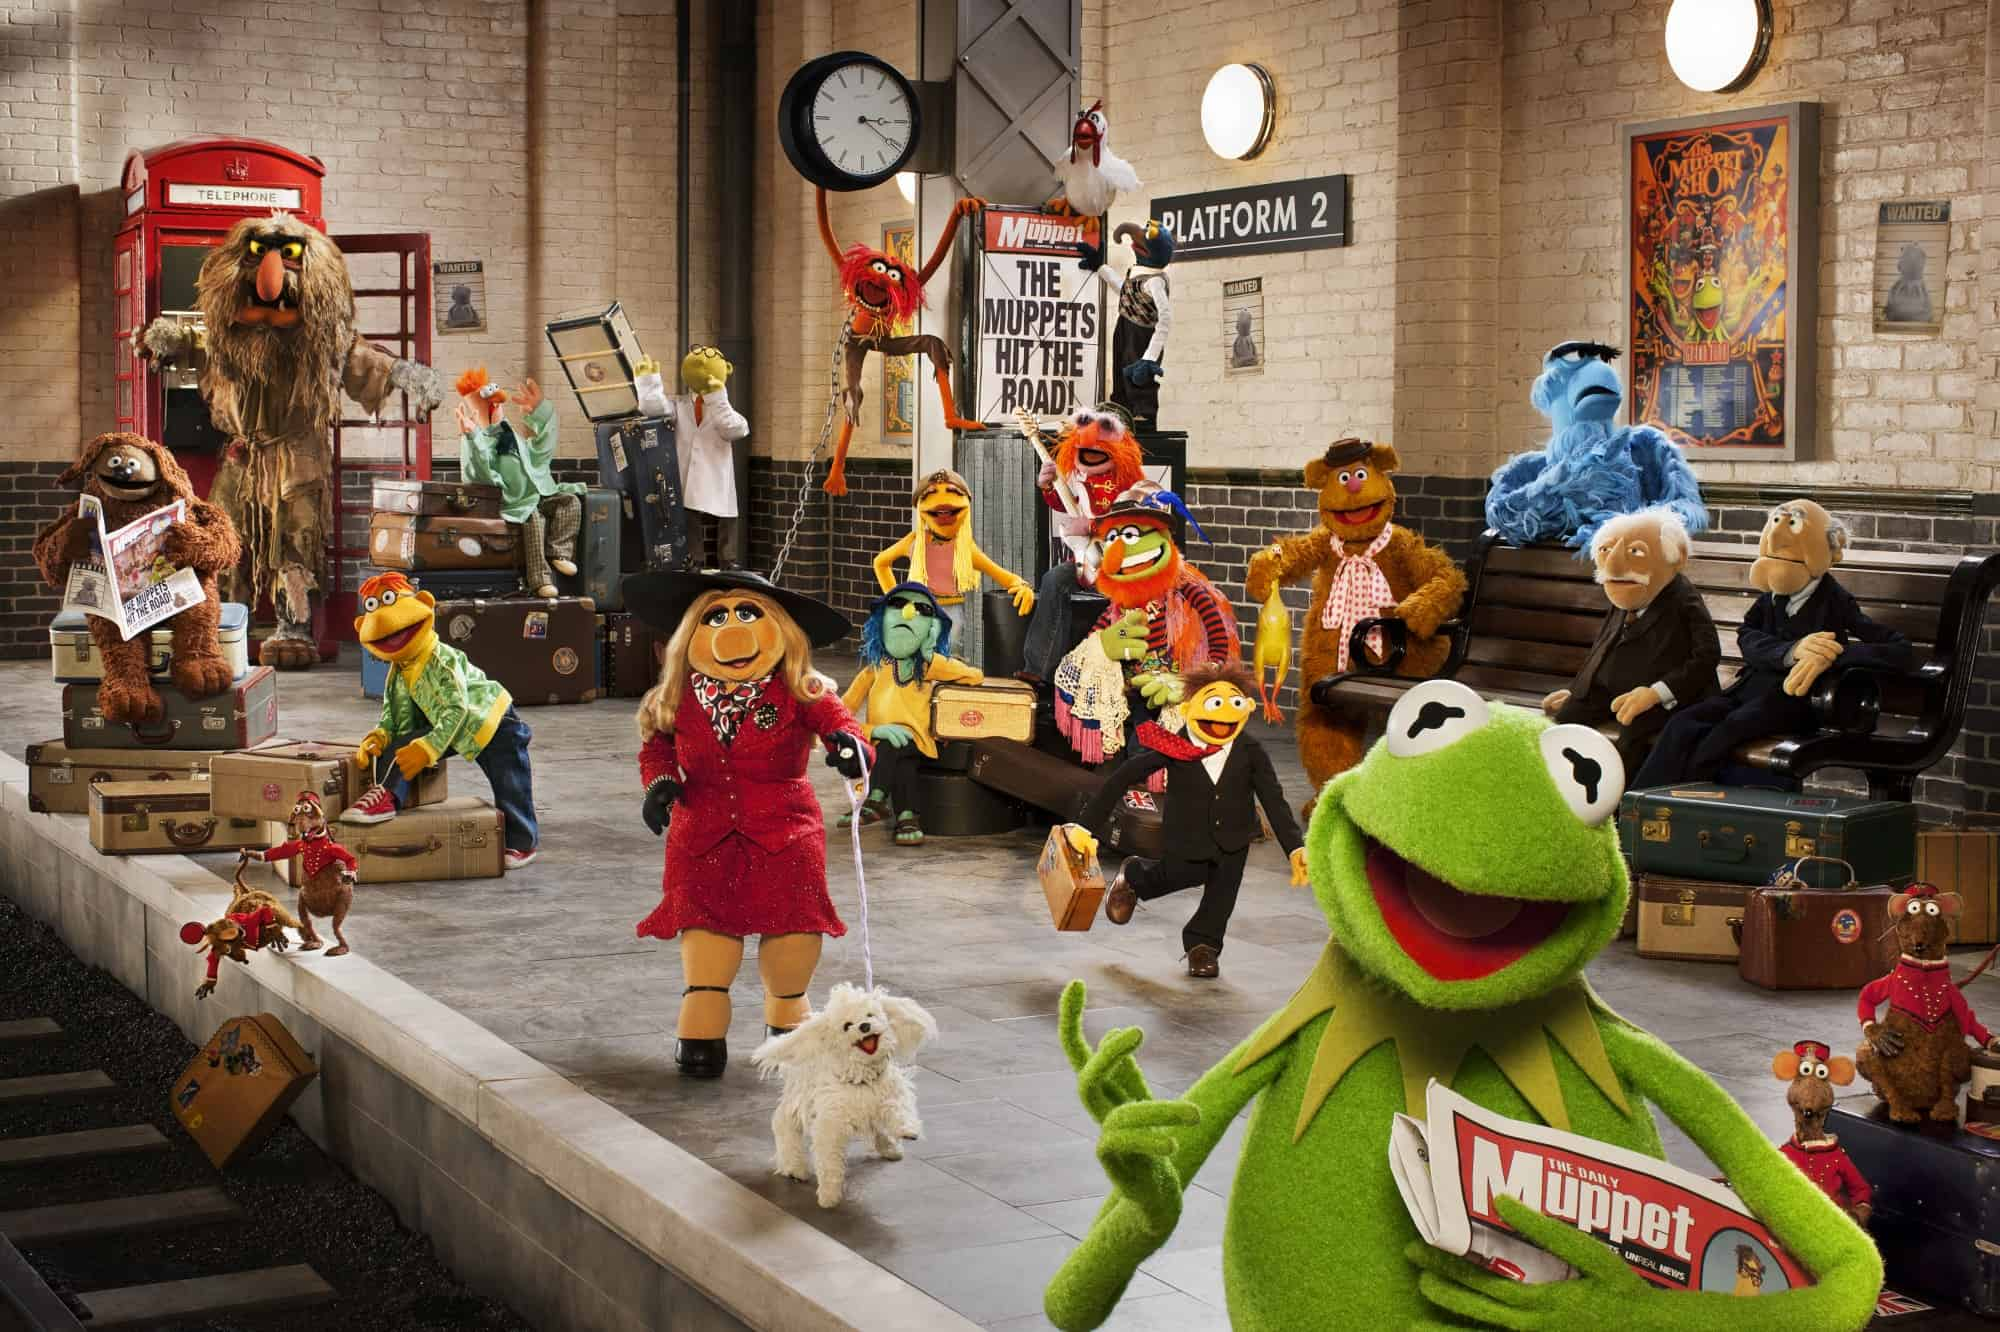 THE MUPPETS ... AGAIN!